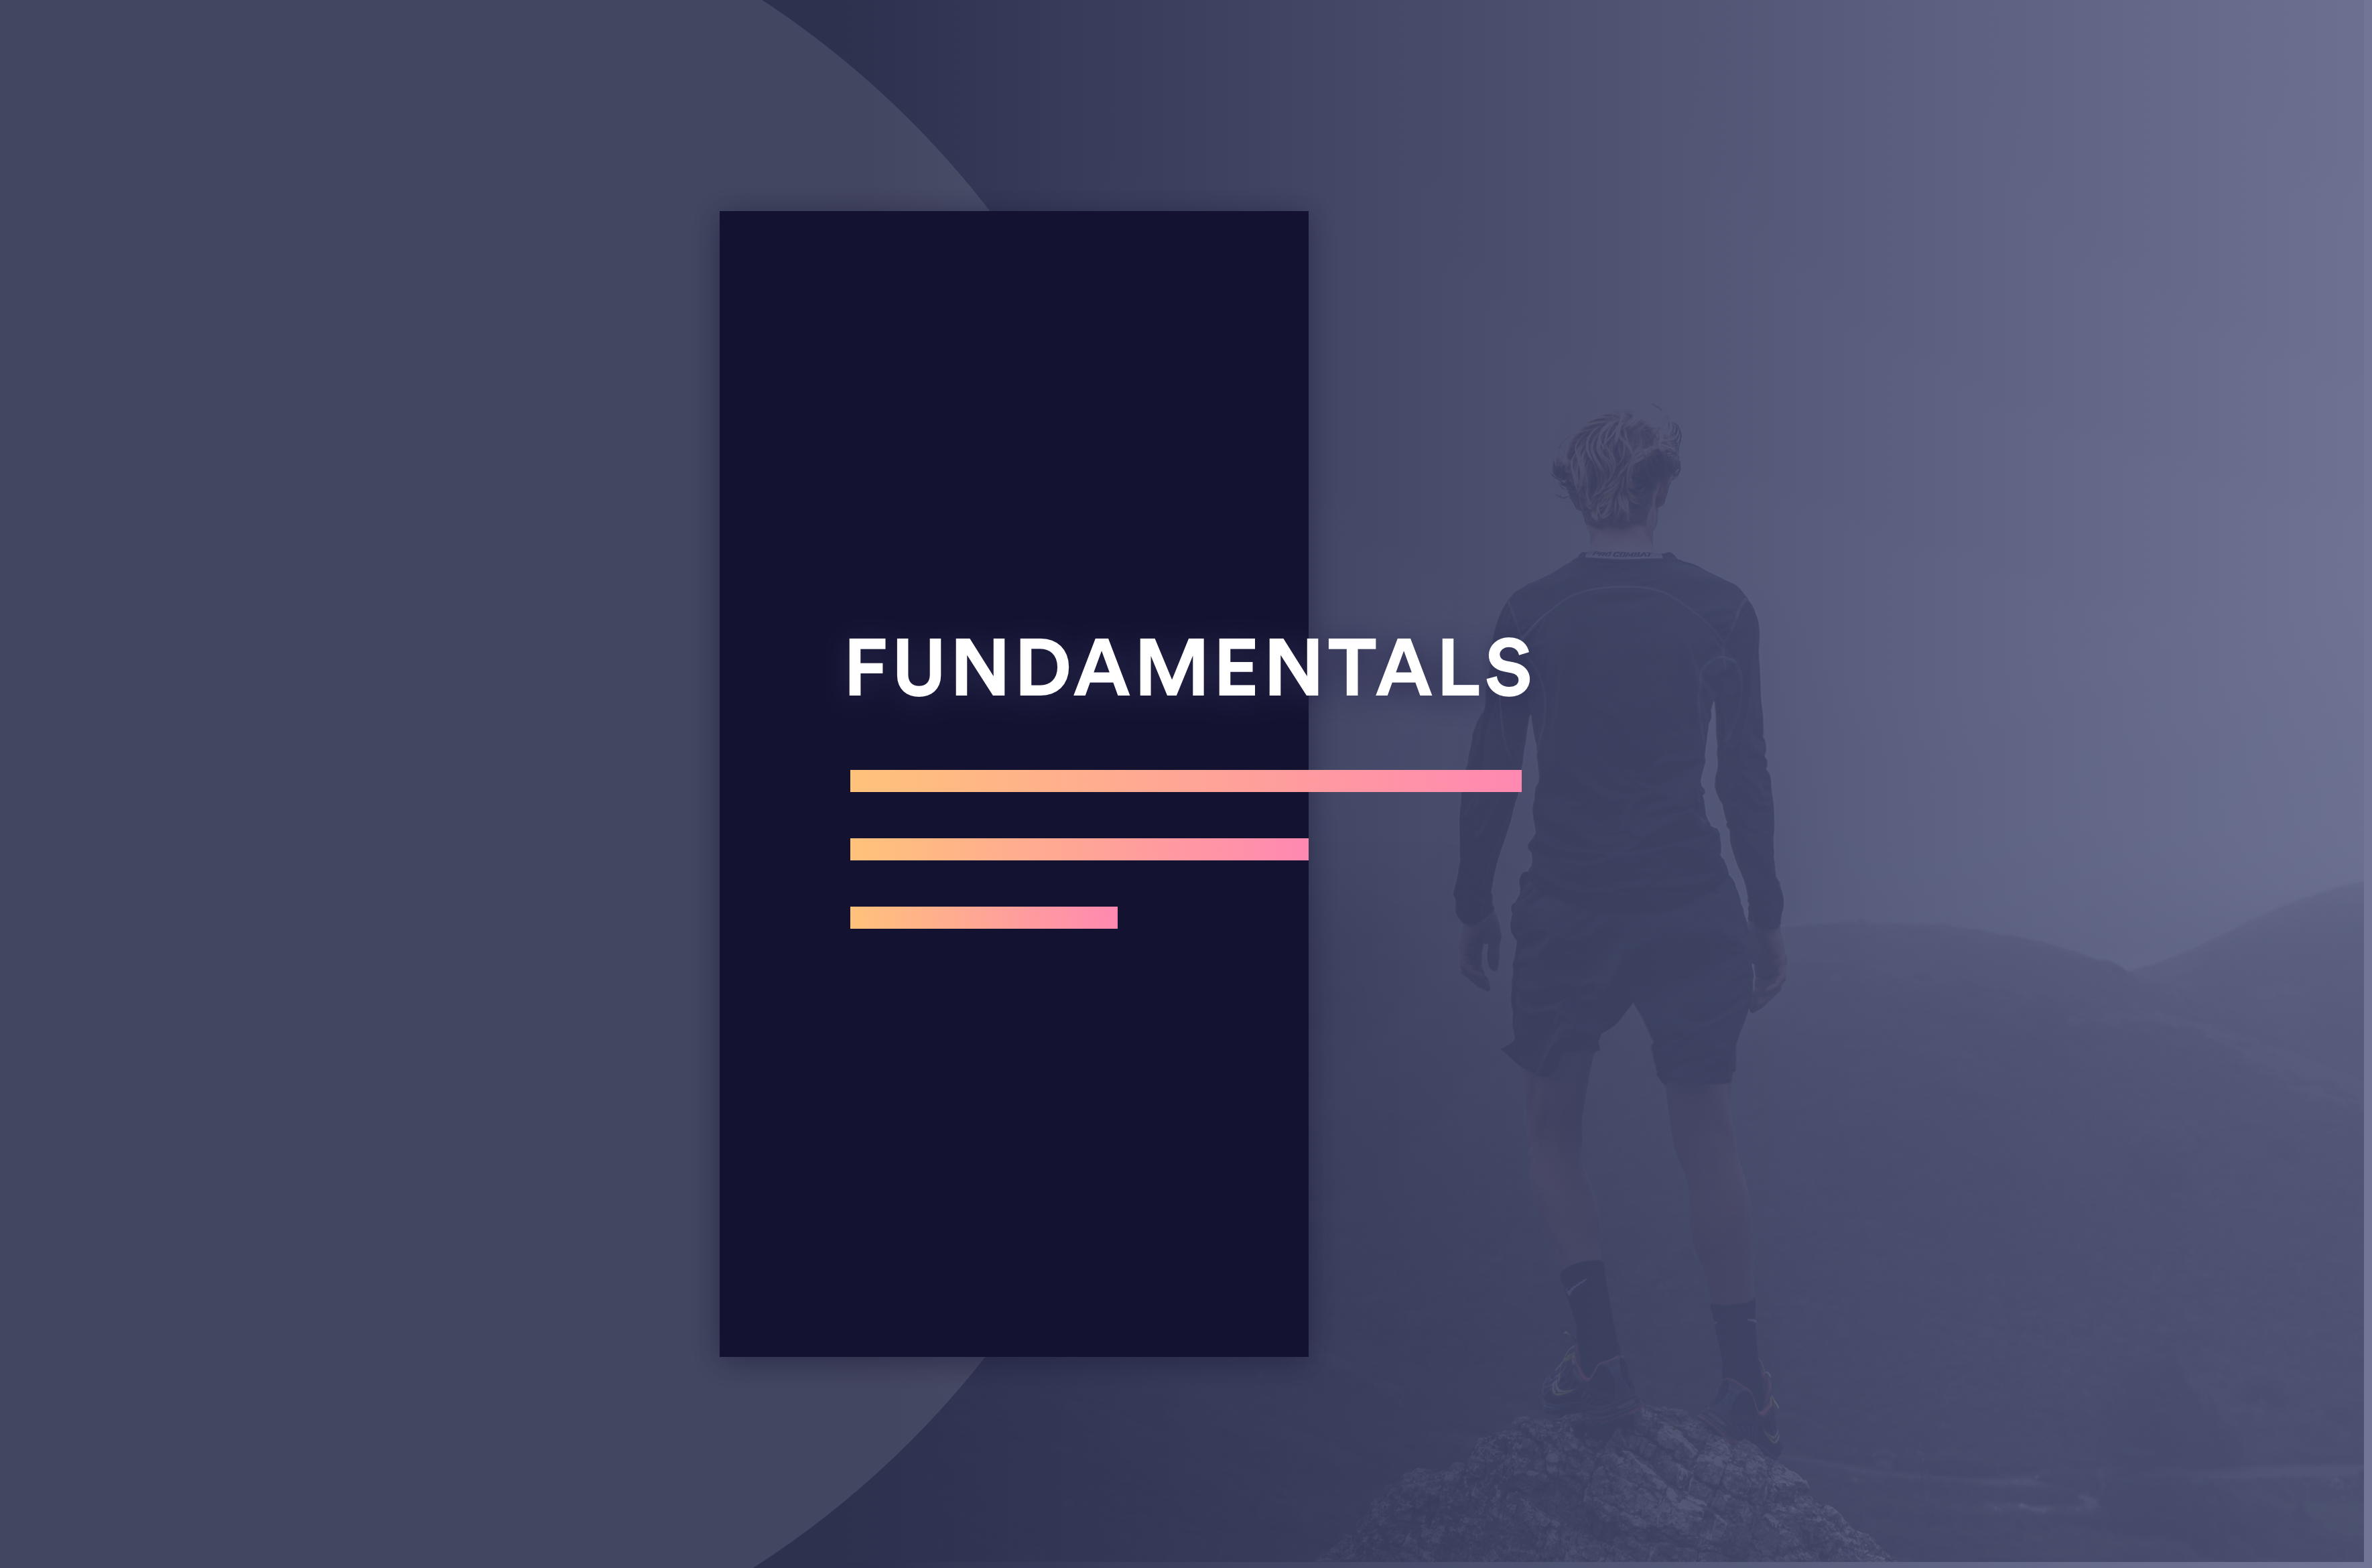 Before you can master design, you must first master the fundamentals